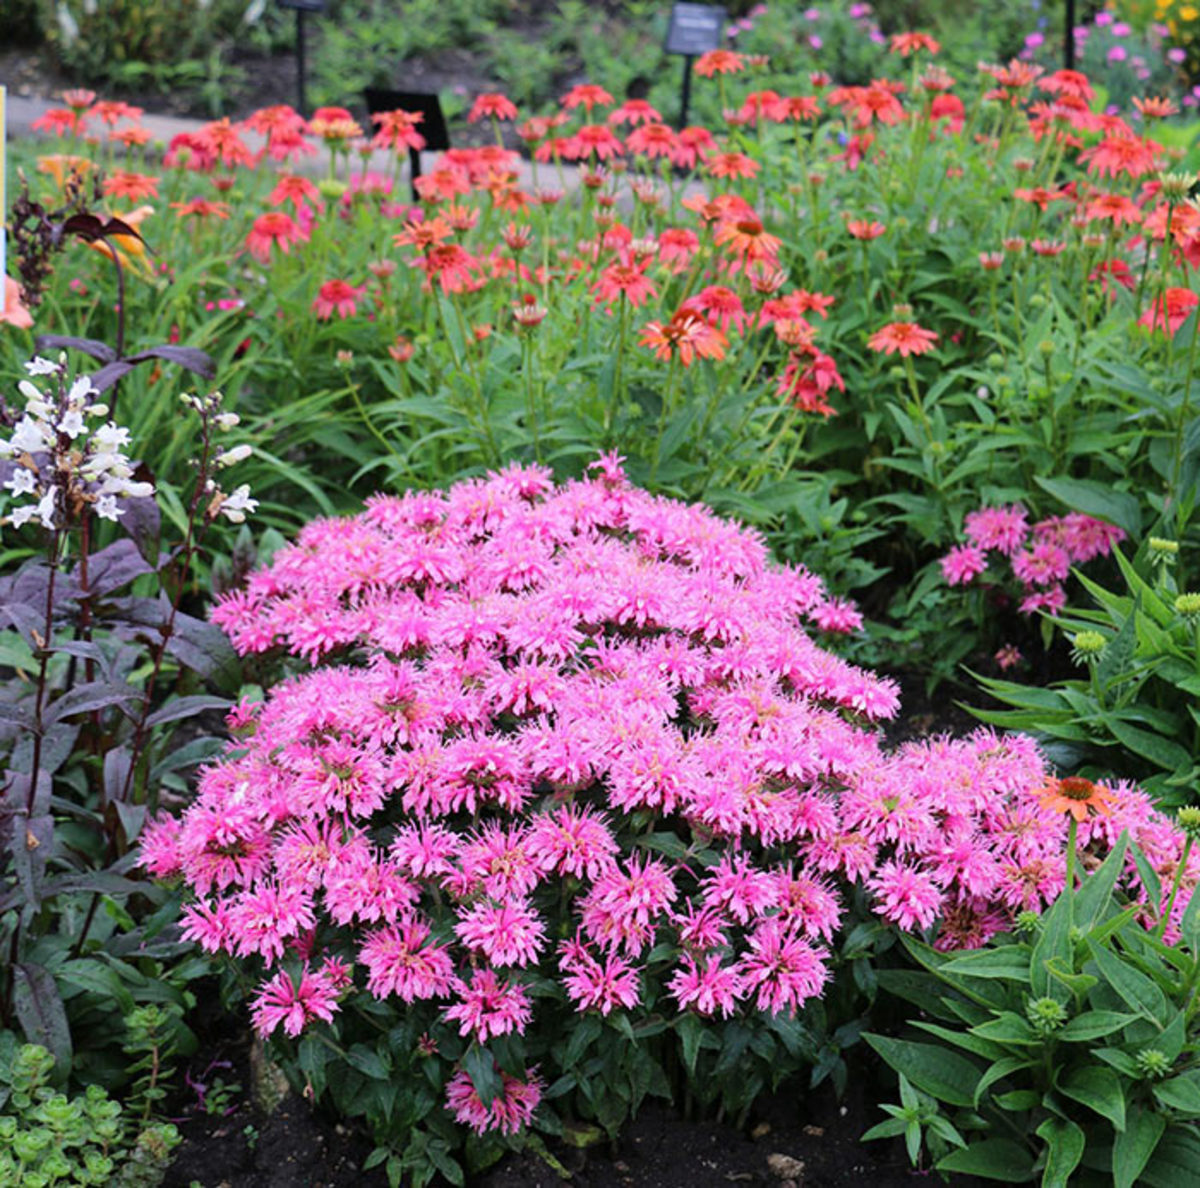 The Balmy series (shown here, Balmy Pink) contains plants that top out at just 12 inches.